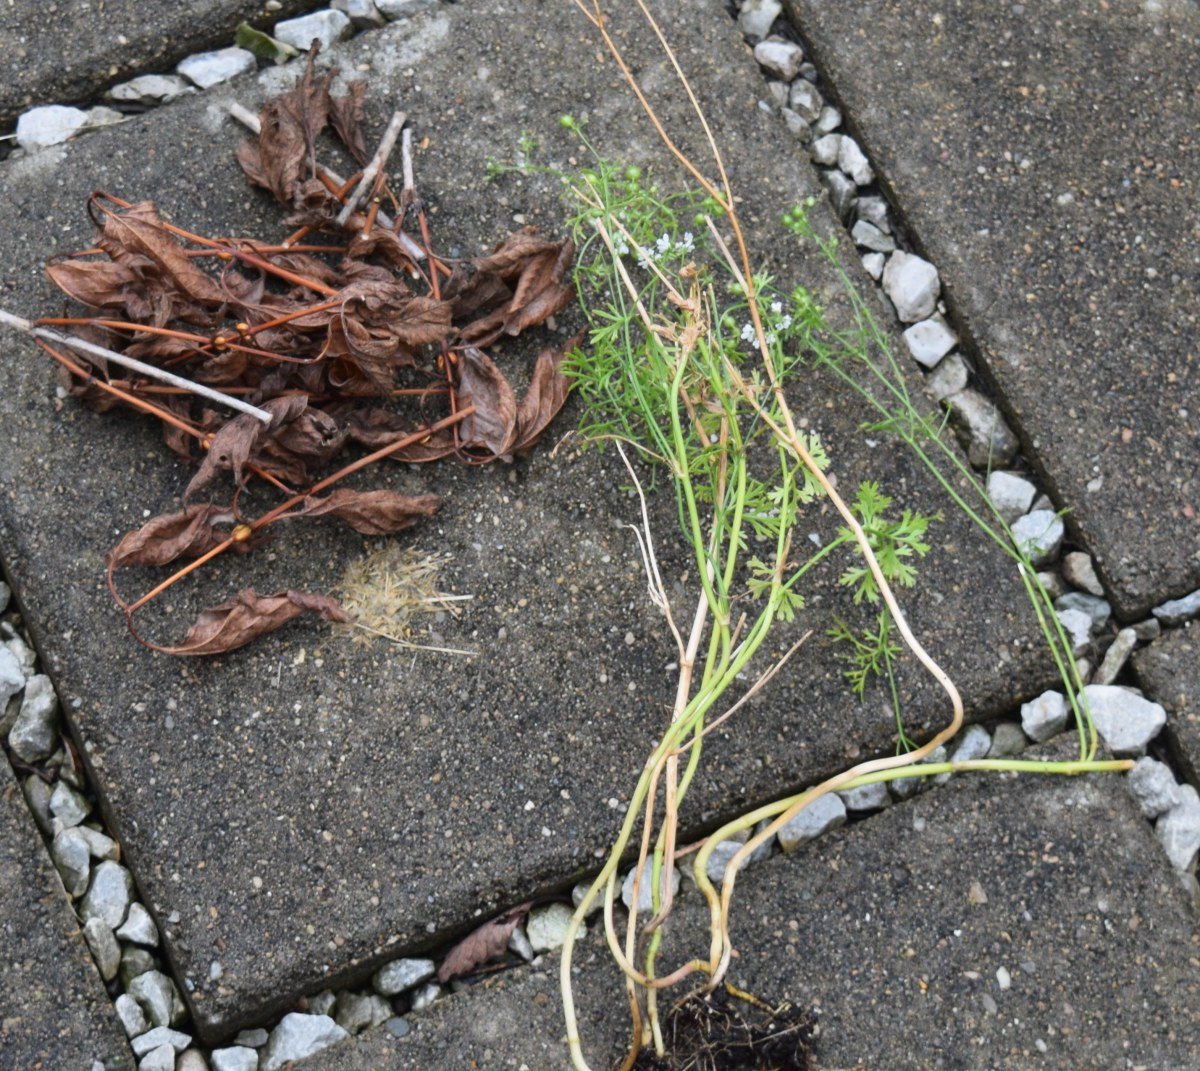 Ingredients for compost pile: Brown and dry example: leaves.  Green and wet example: cilantro, end of season.